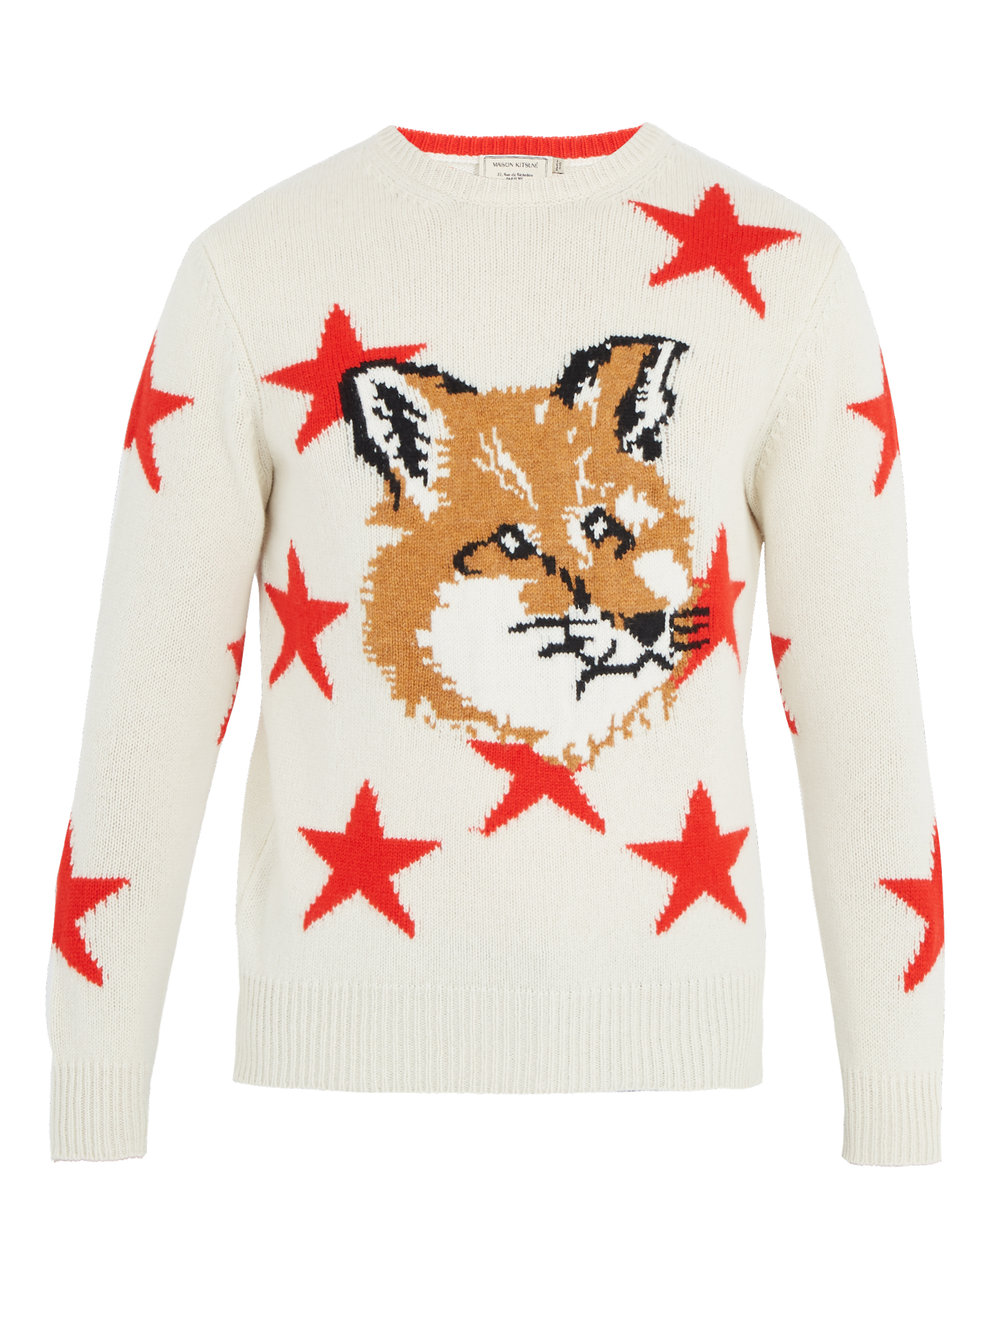 5.Maison Kitsune sweater at MATCHESFASHION.COM.Jpeg